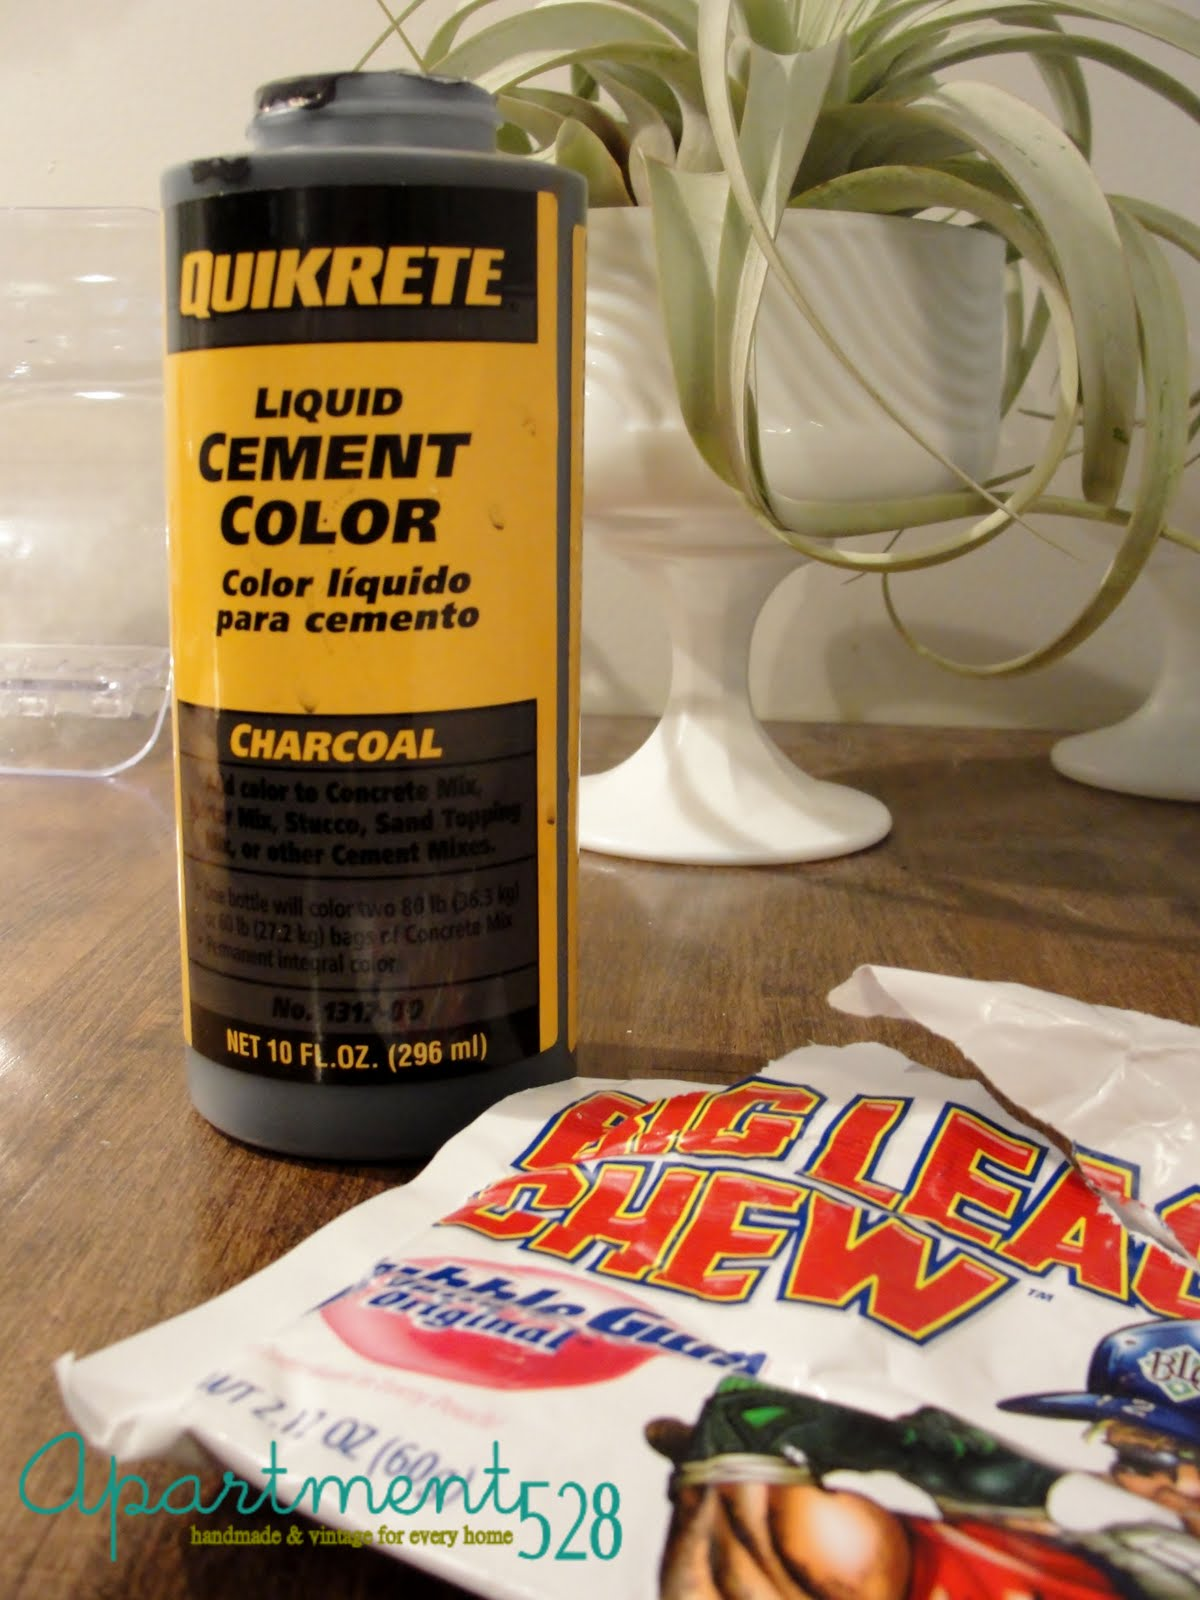 Buy Quikrete Countertop Mix Apartment 528 The Ultimate Weekender Diy Concrete